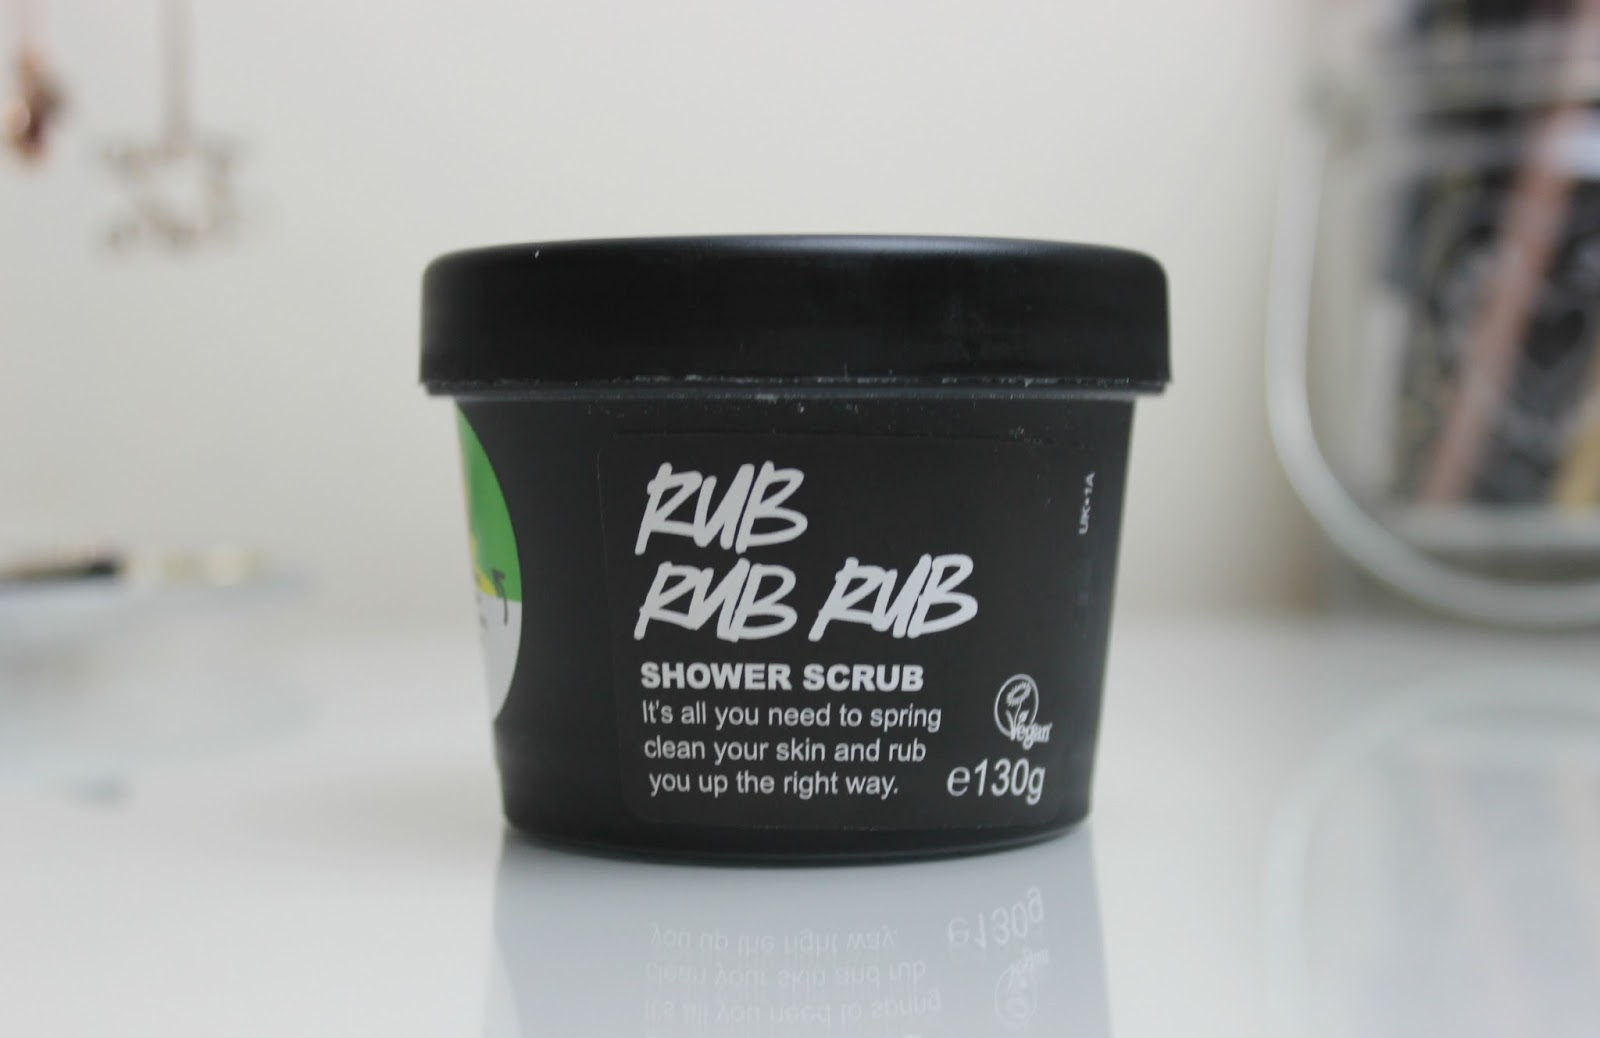 A picture of Lush Rub Rub Rub Shower Scrub